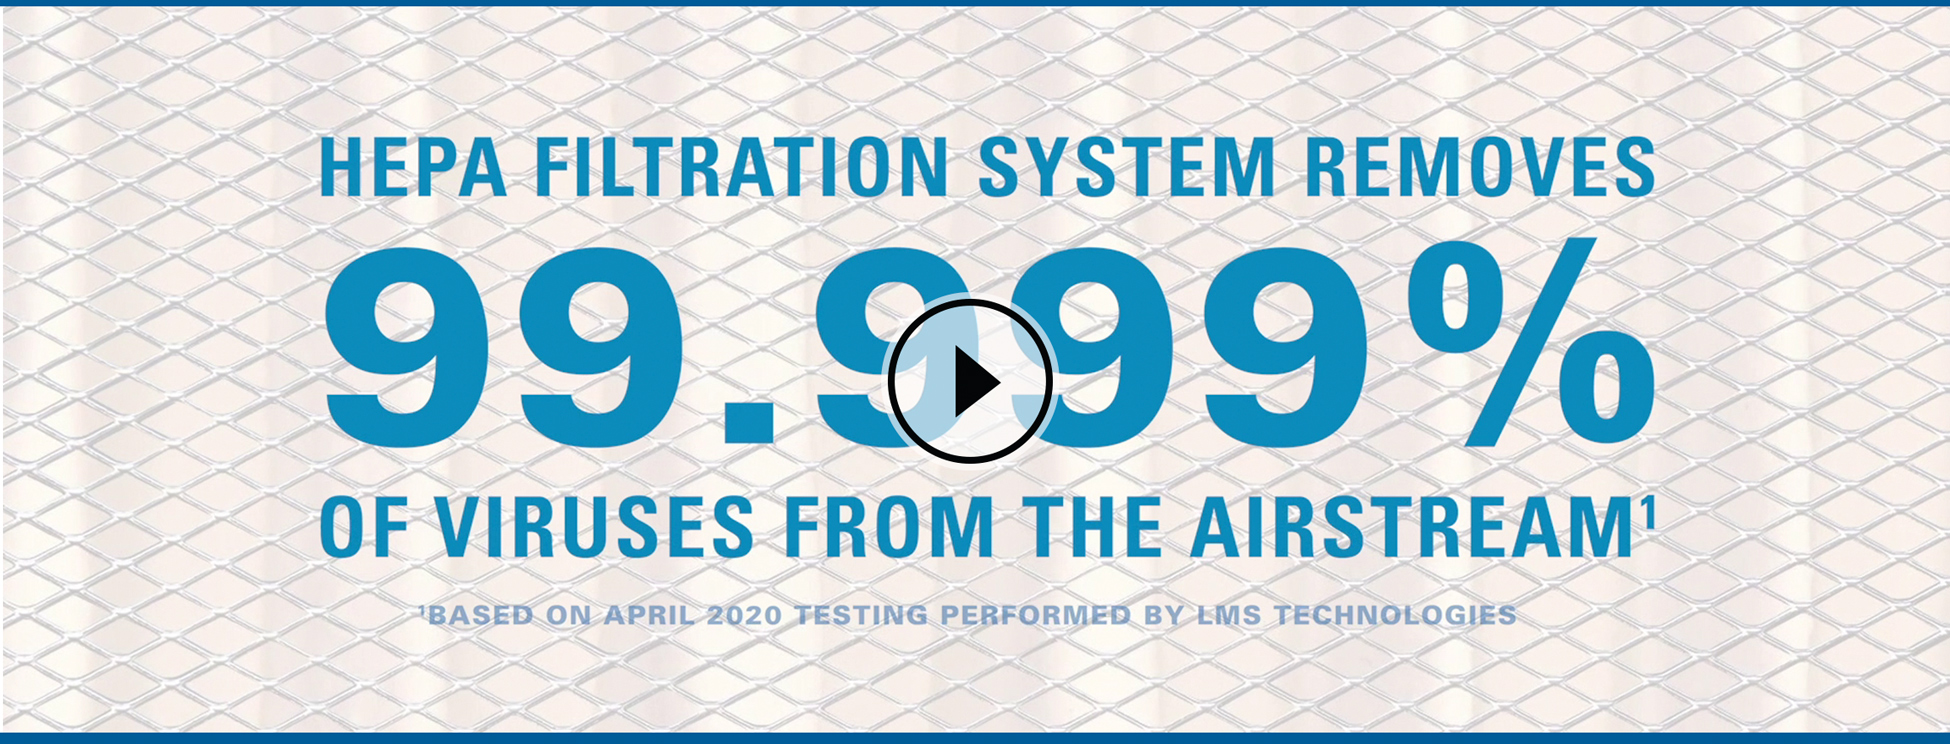 HEPA Filtration Video Pause Screen. Click to Play.